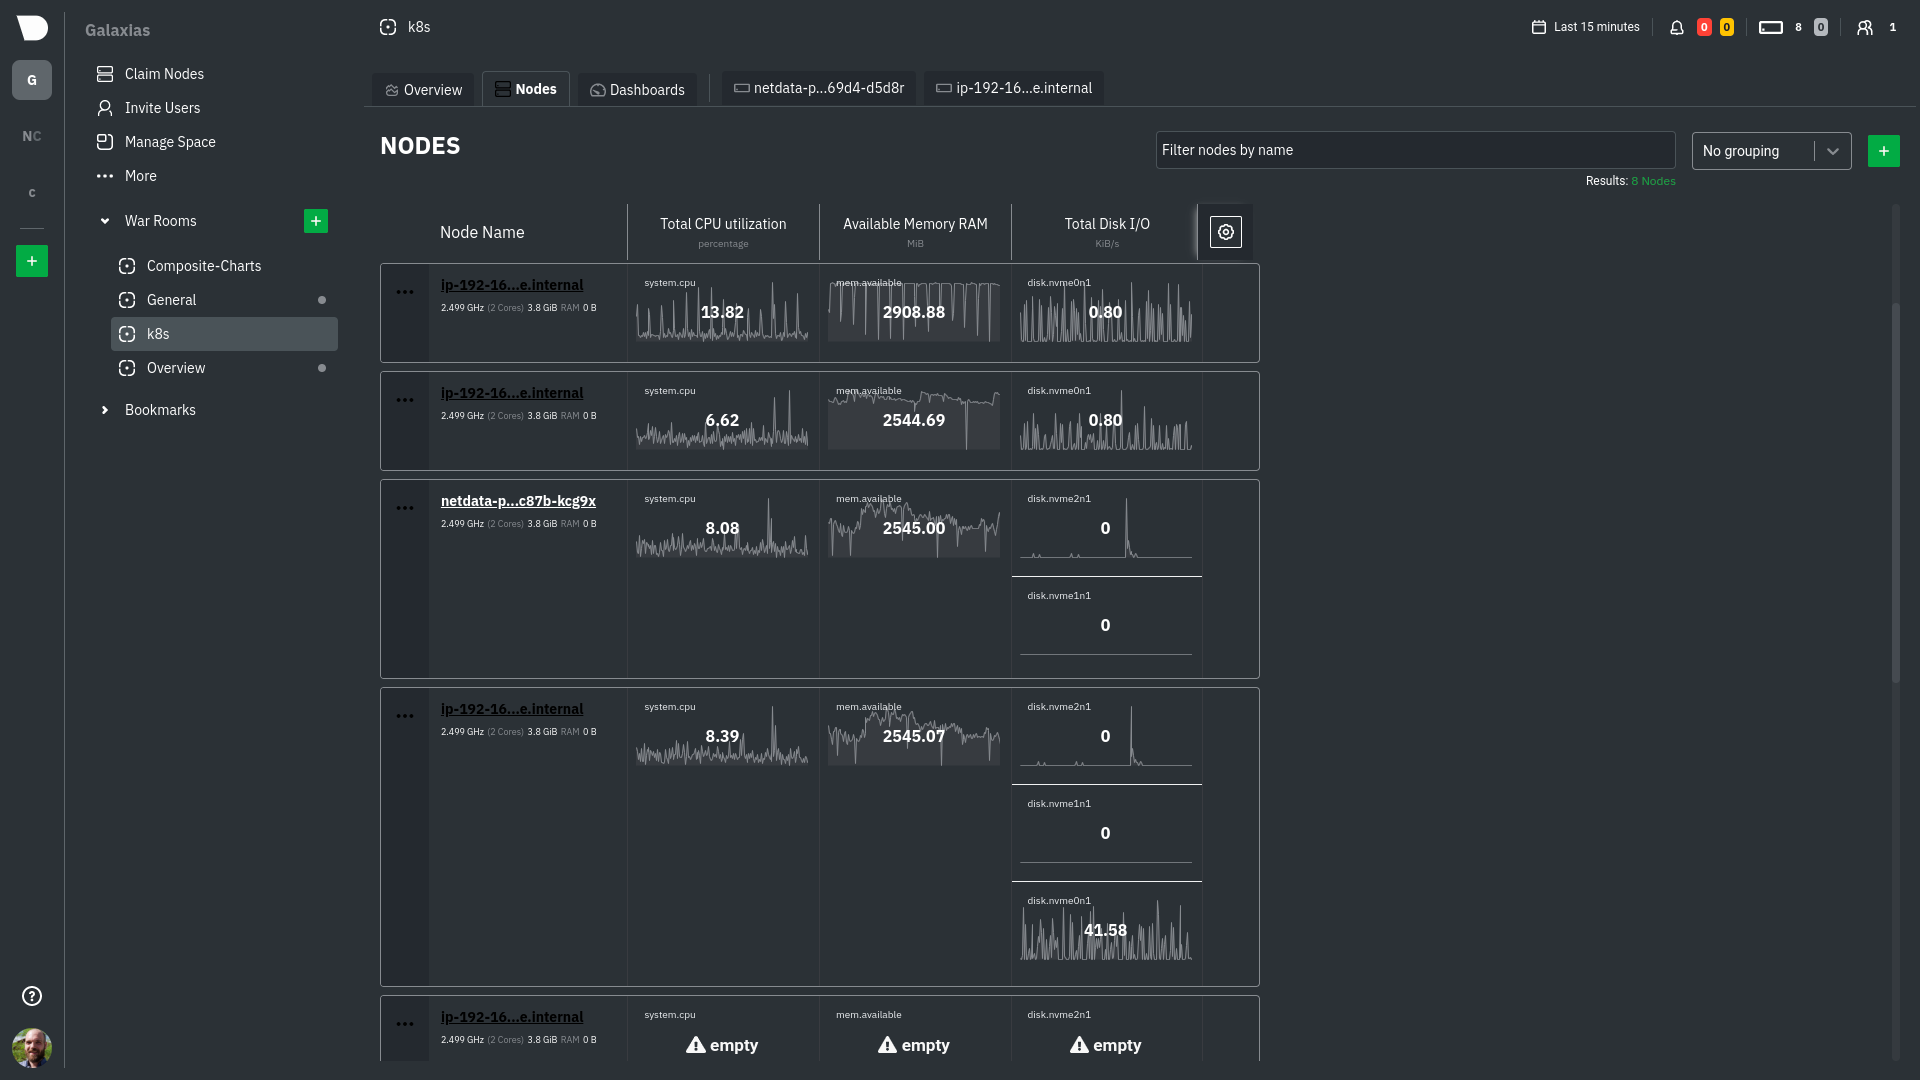 The Nodes view in Netdata Cloud